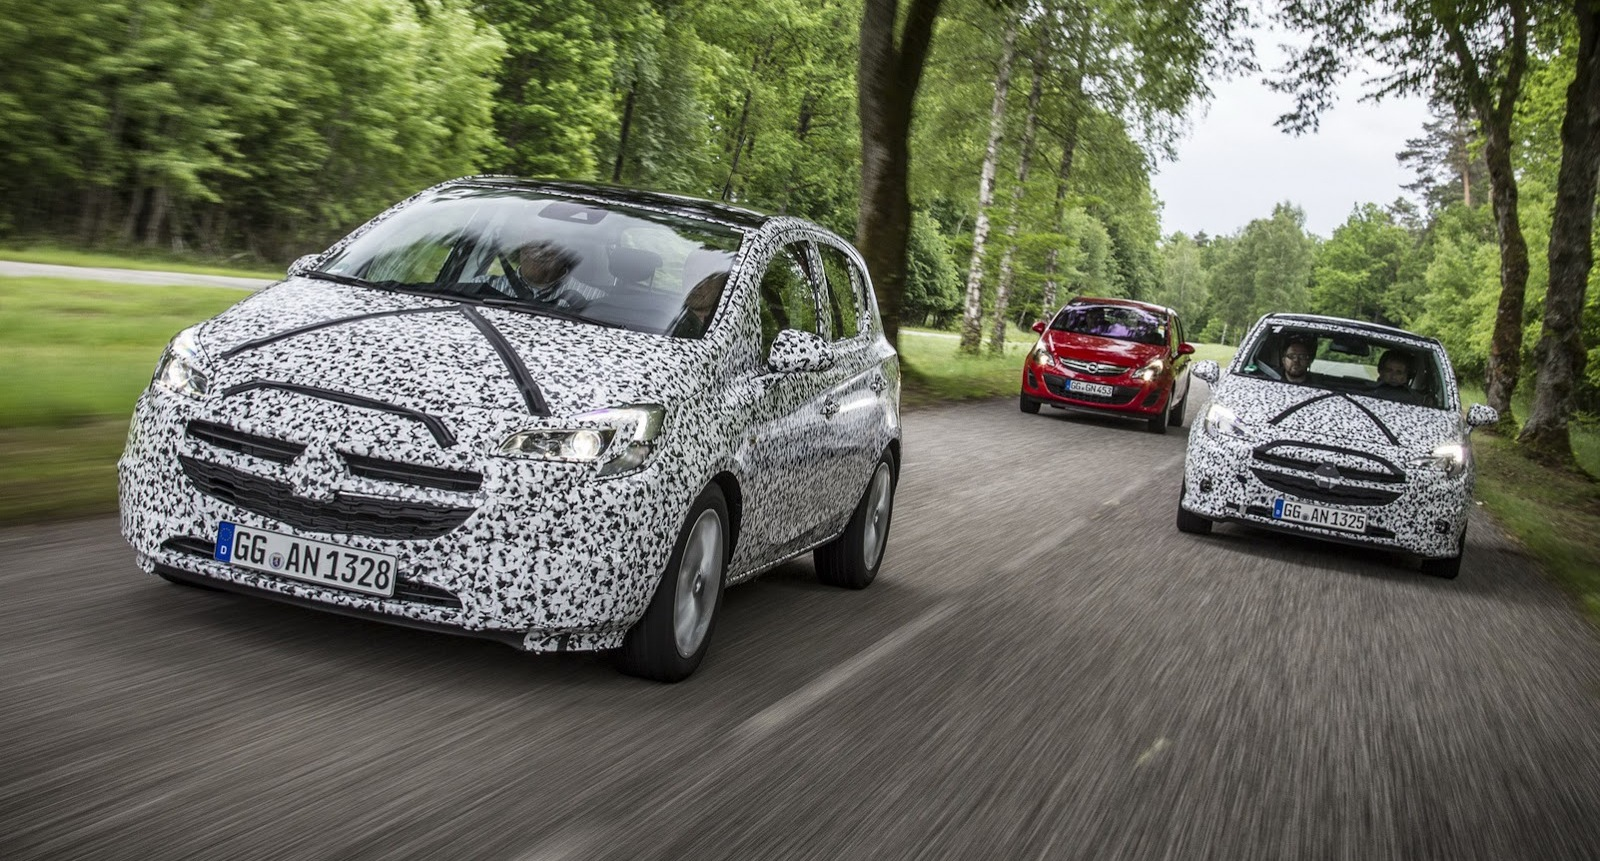 Opel Plans 27 New Models, 17 New Engines By 2018